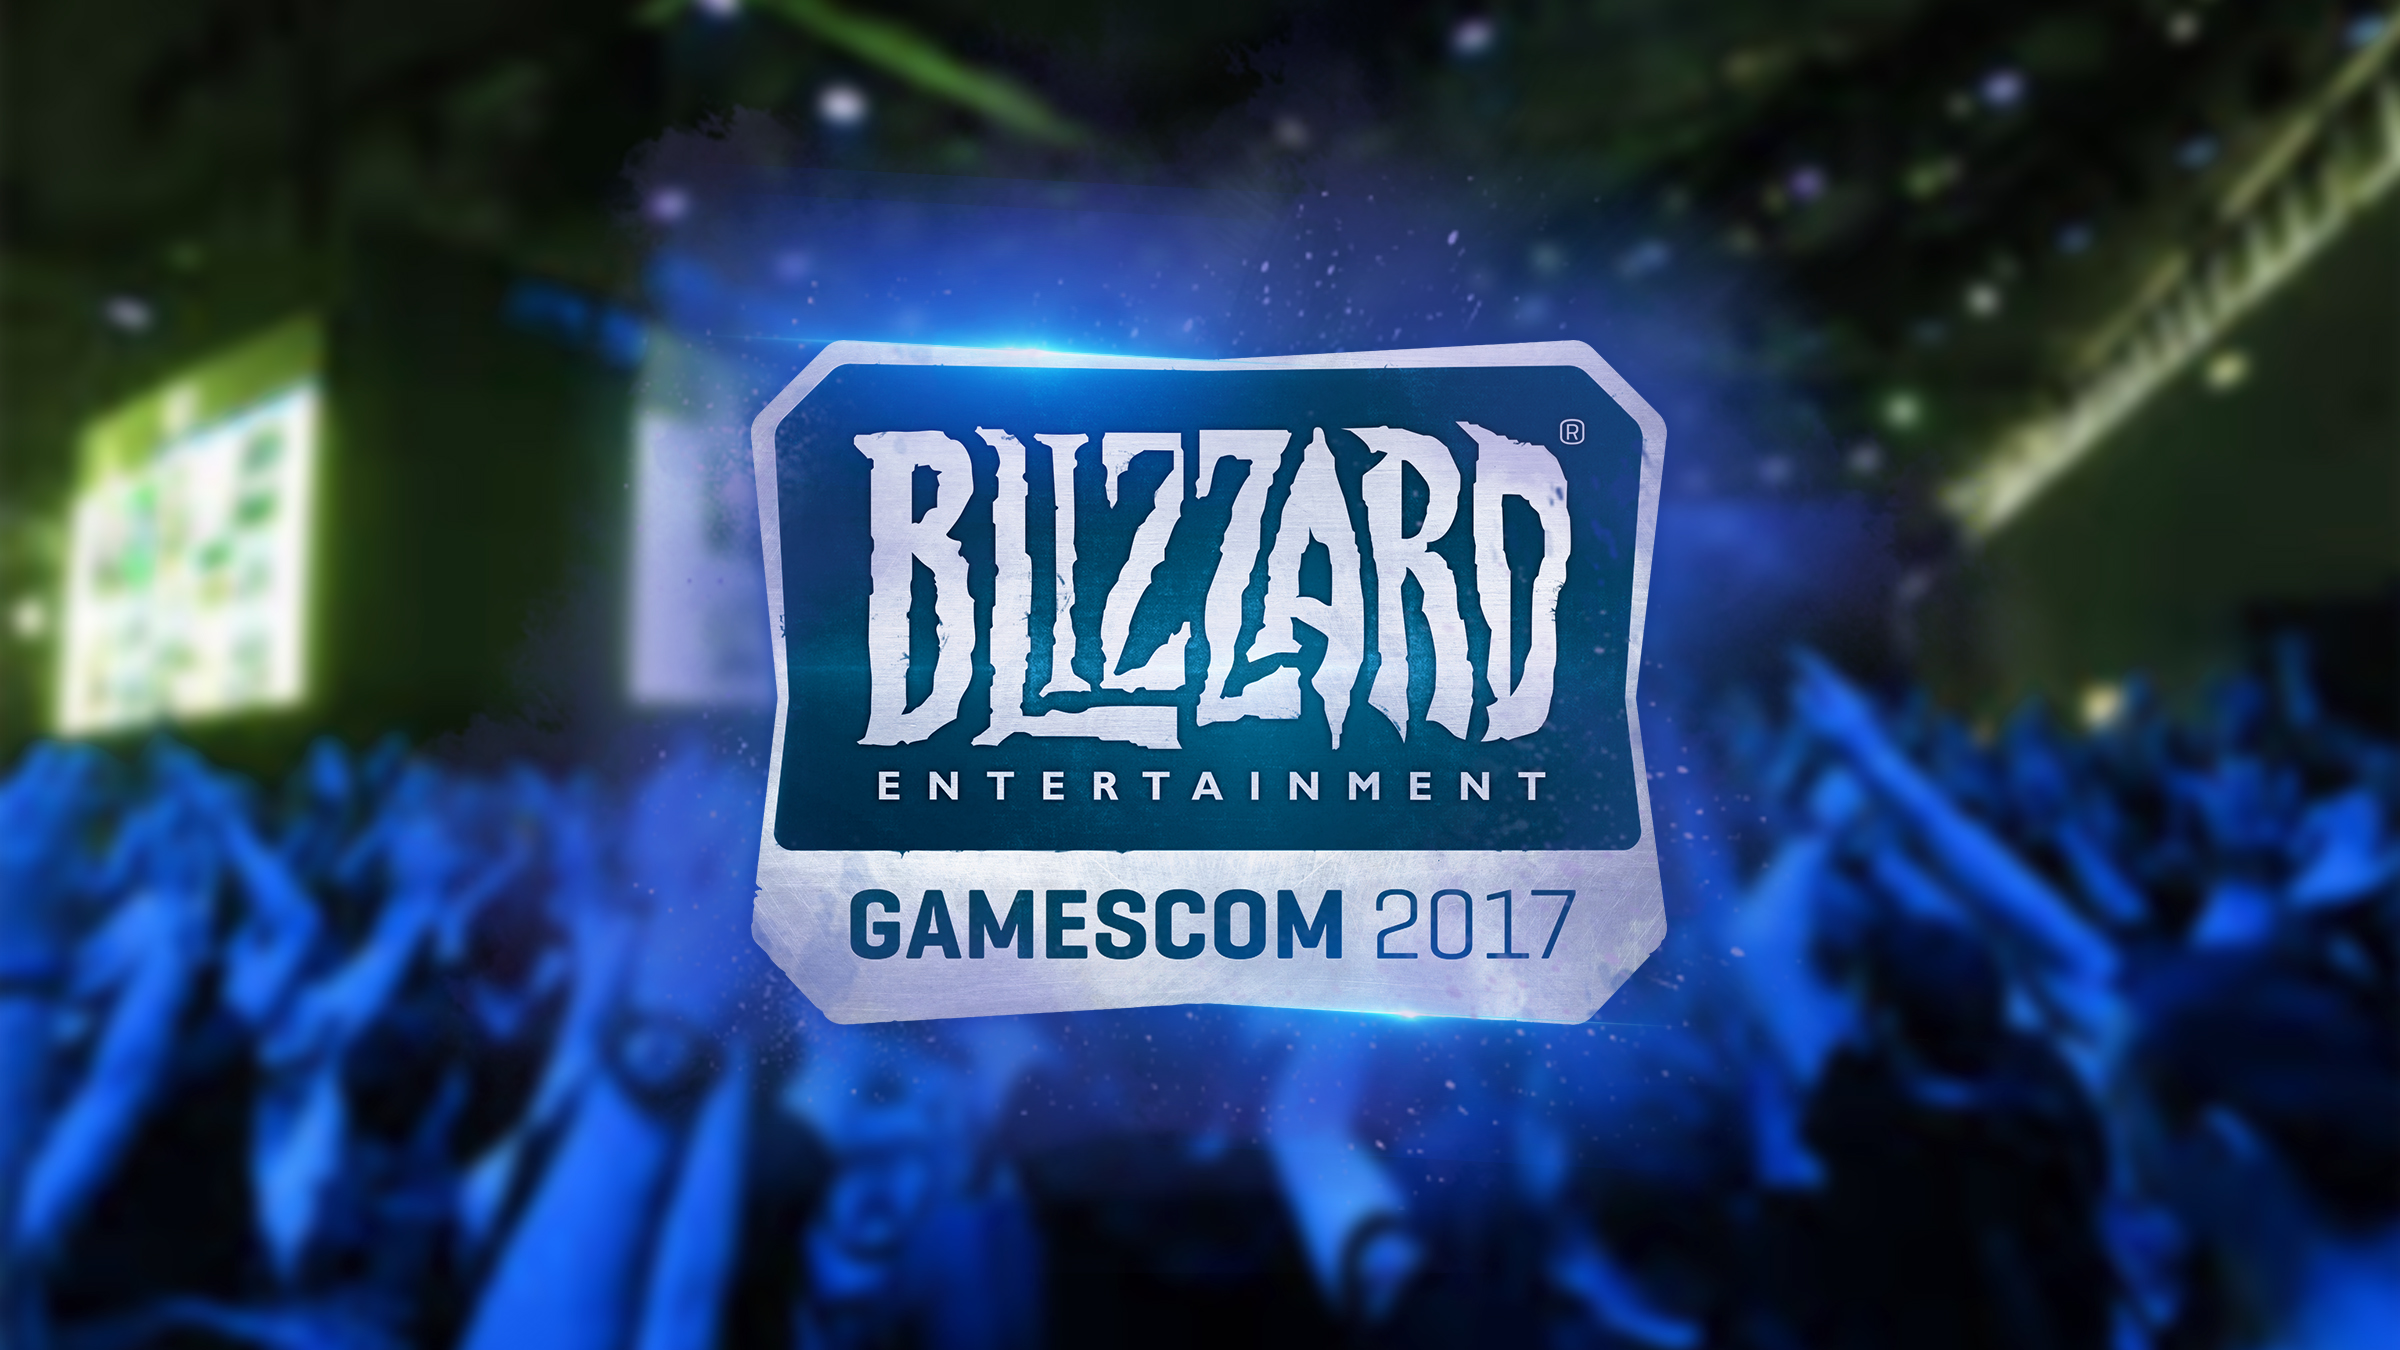 Blizzard Entertainment auf der gamescom 2017